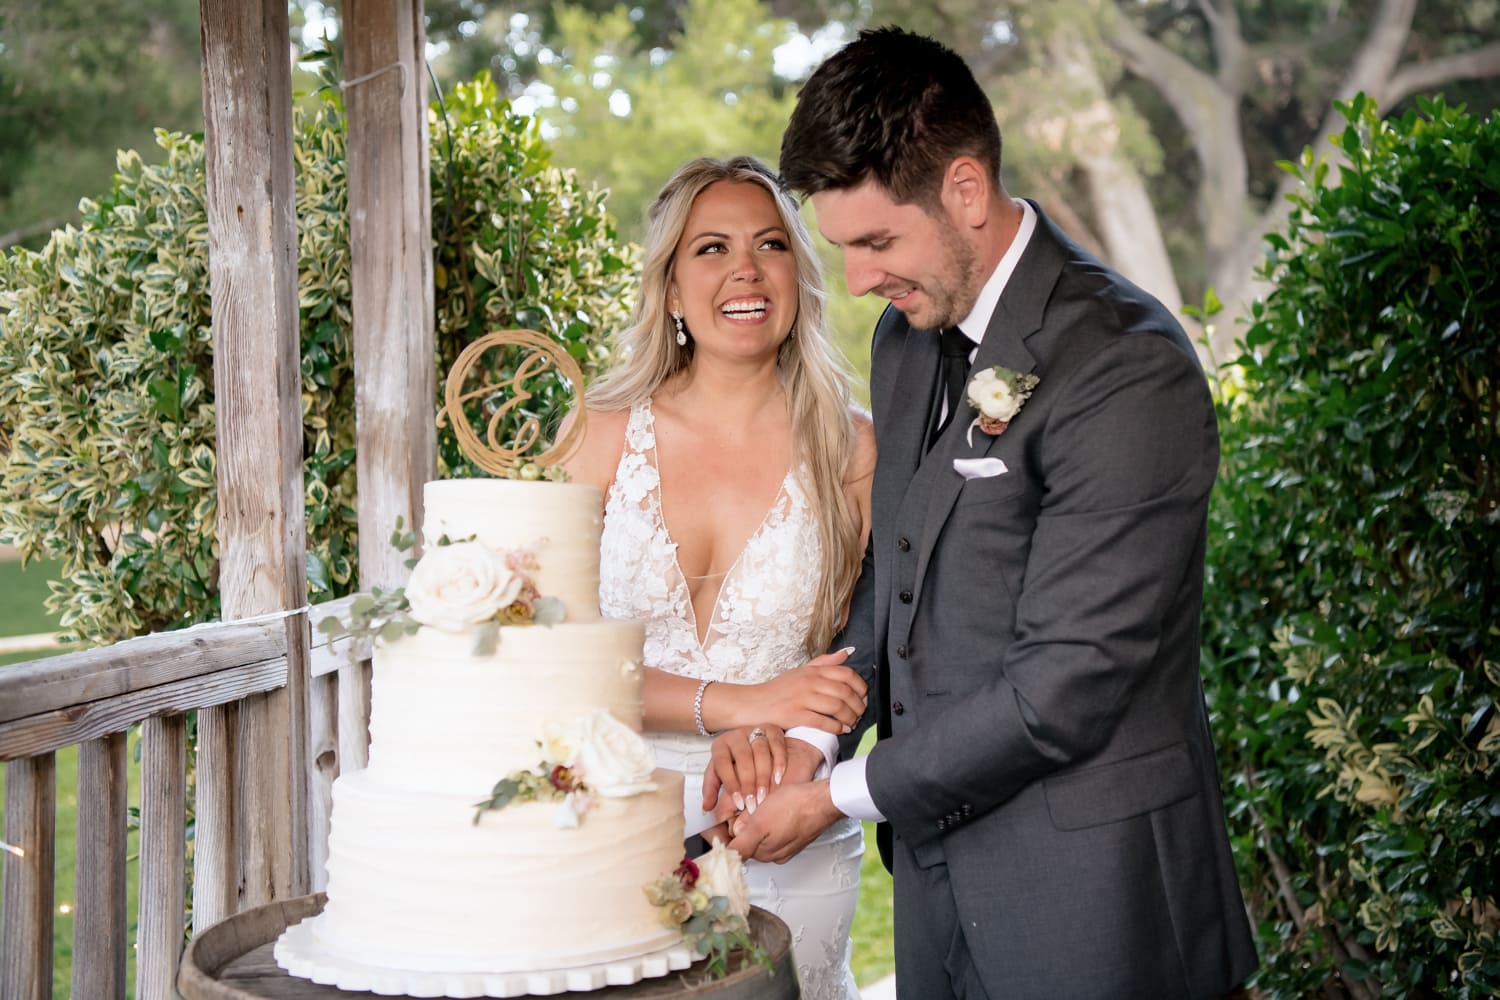 Couple cutting their cake at Stone House wedding reception